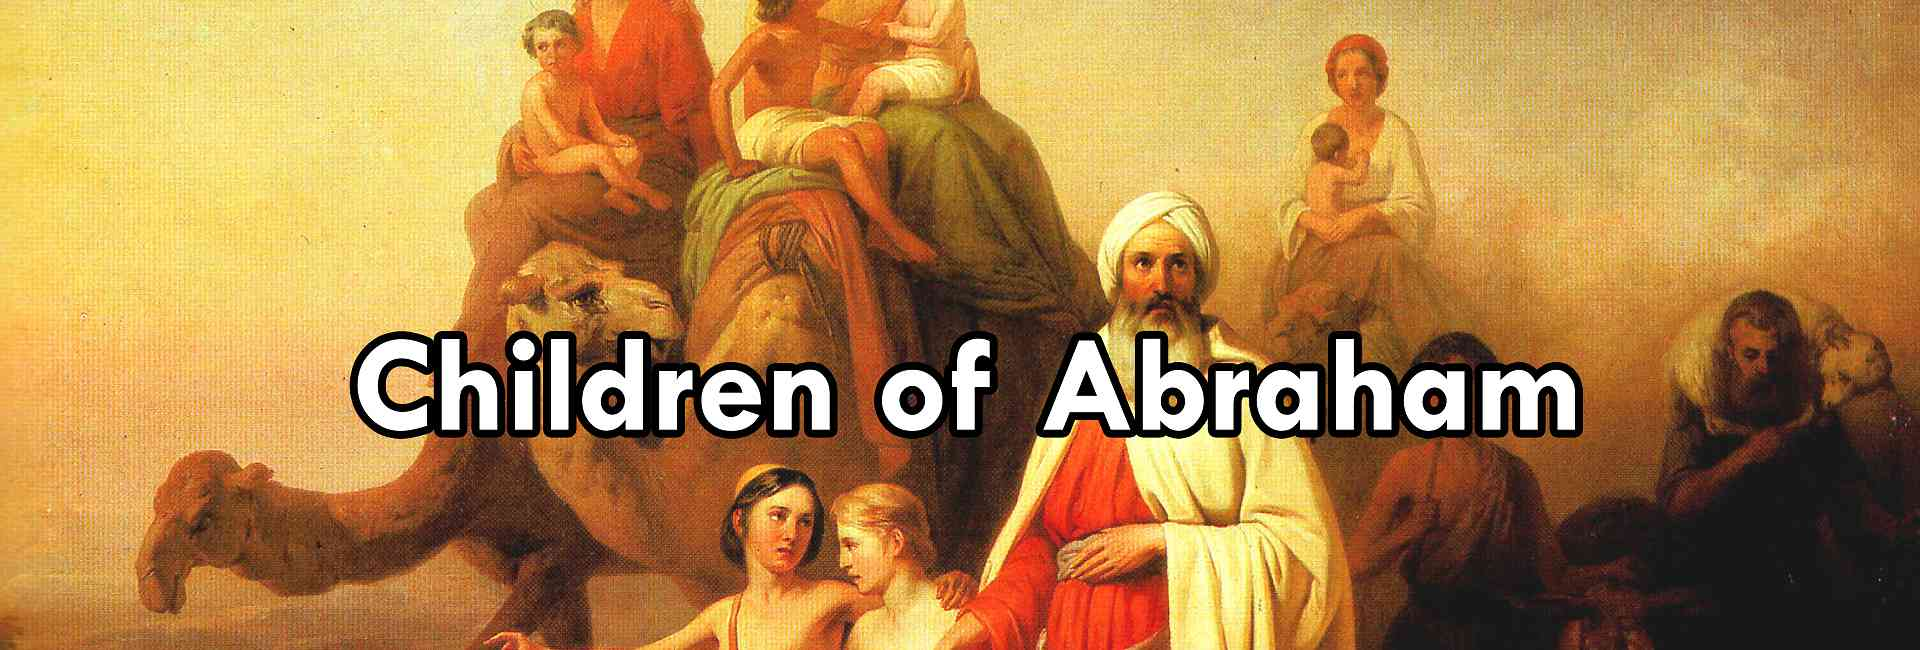 Children of Abraham, The